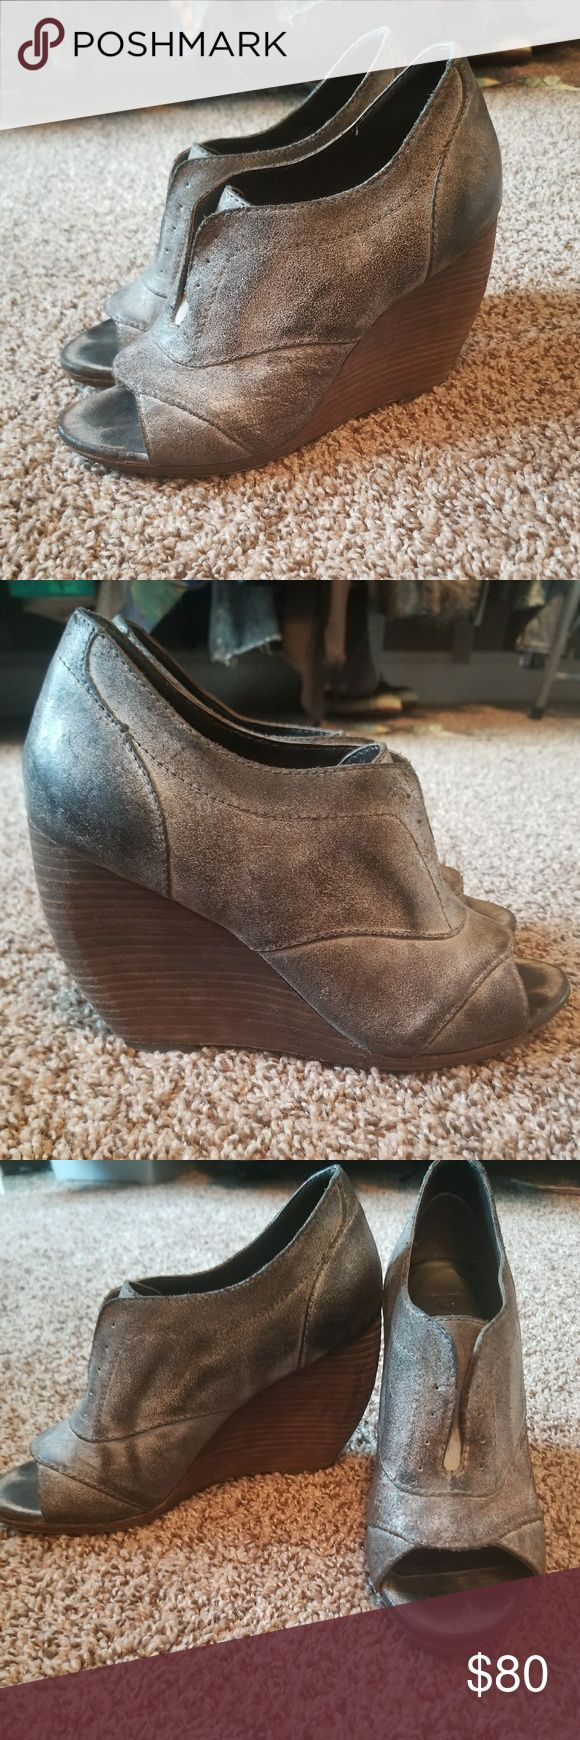 Joe's Jeans Mettalic Silver Wedge Shoes 8.5 Amazing condition, soft leather, beautiful distressed mettalic silver look Joe's Jeans Shoes Wedges